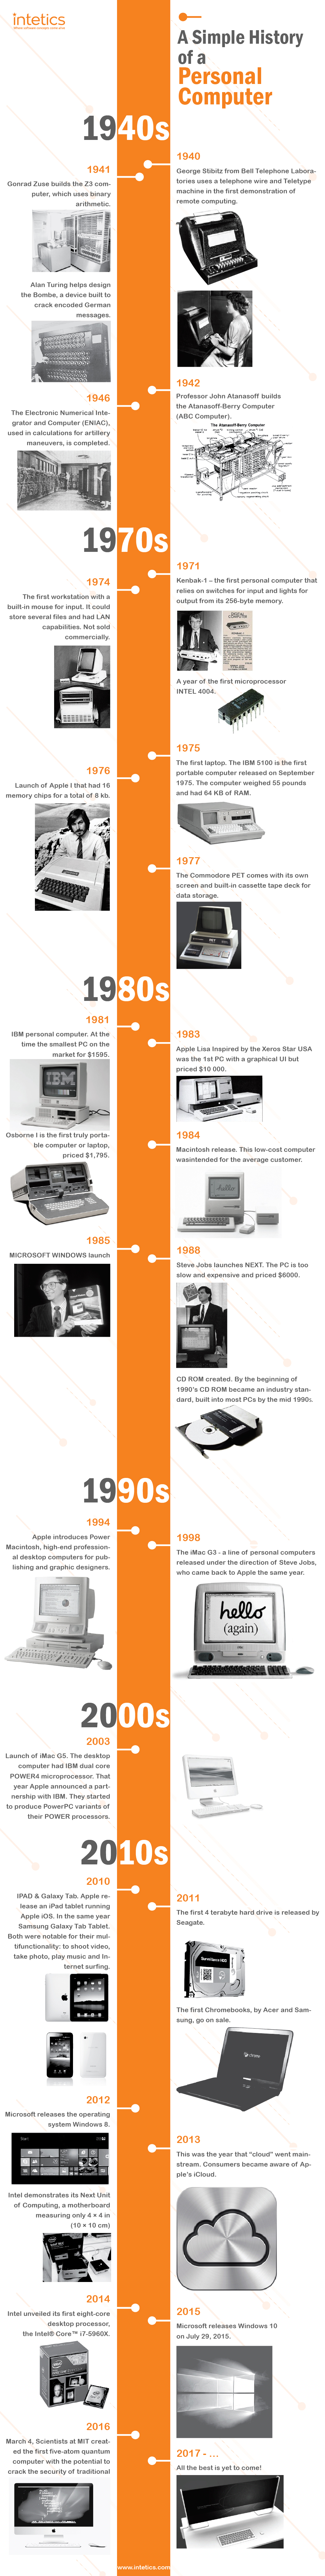 Infographic A Simple History Of A Personal Computer